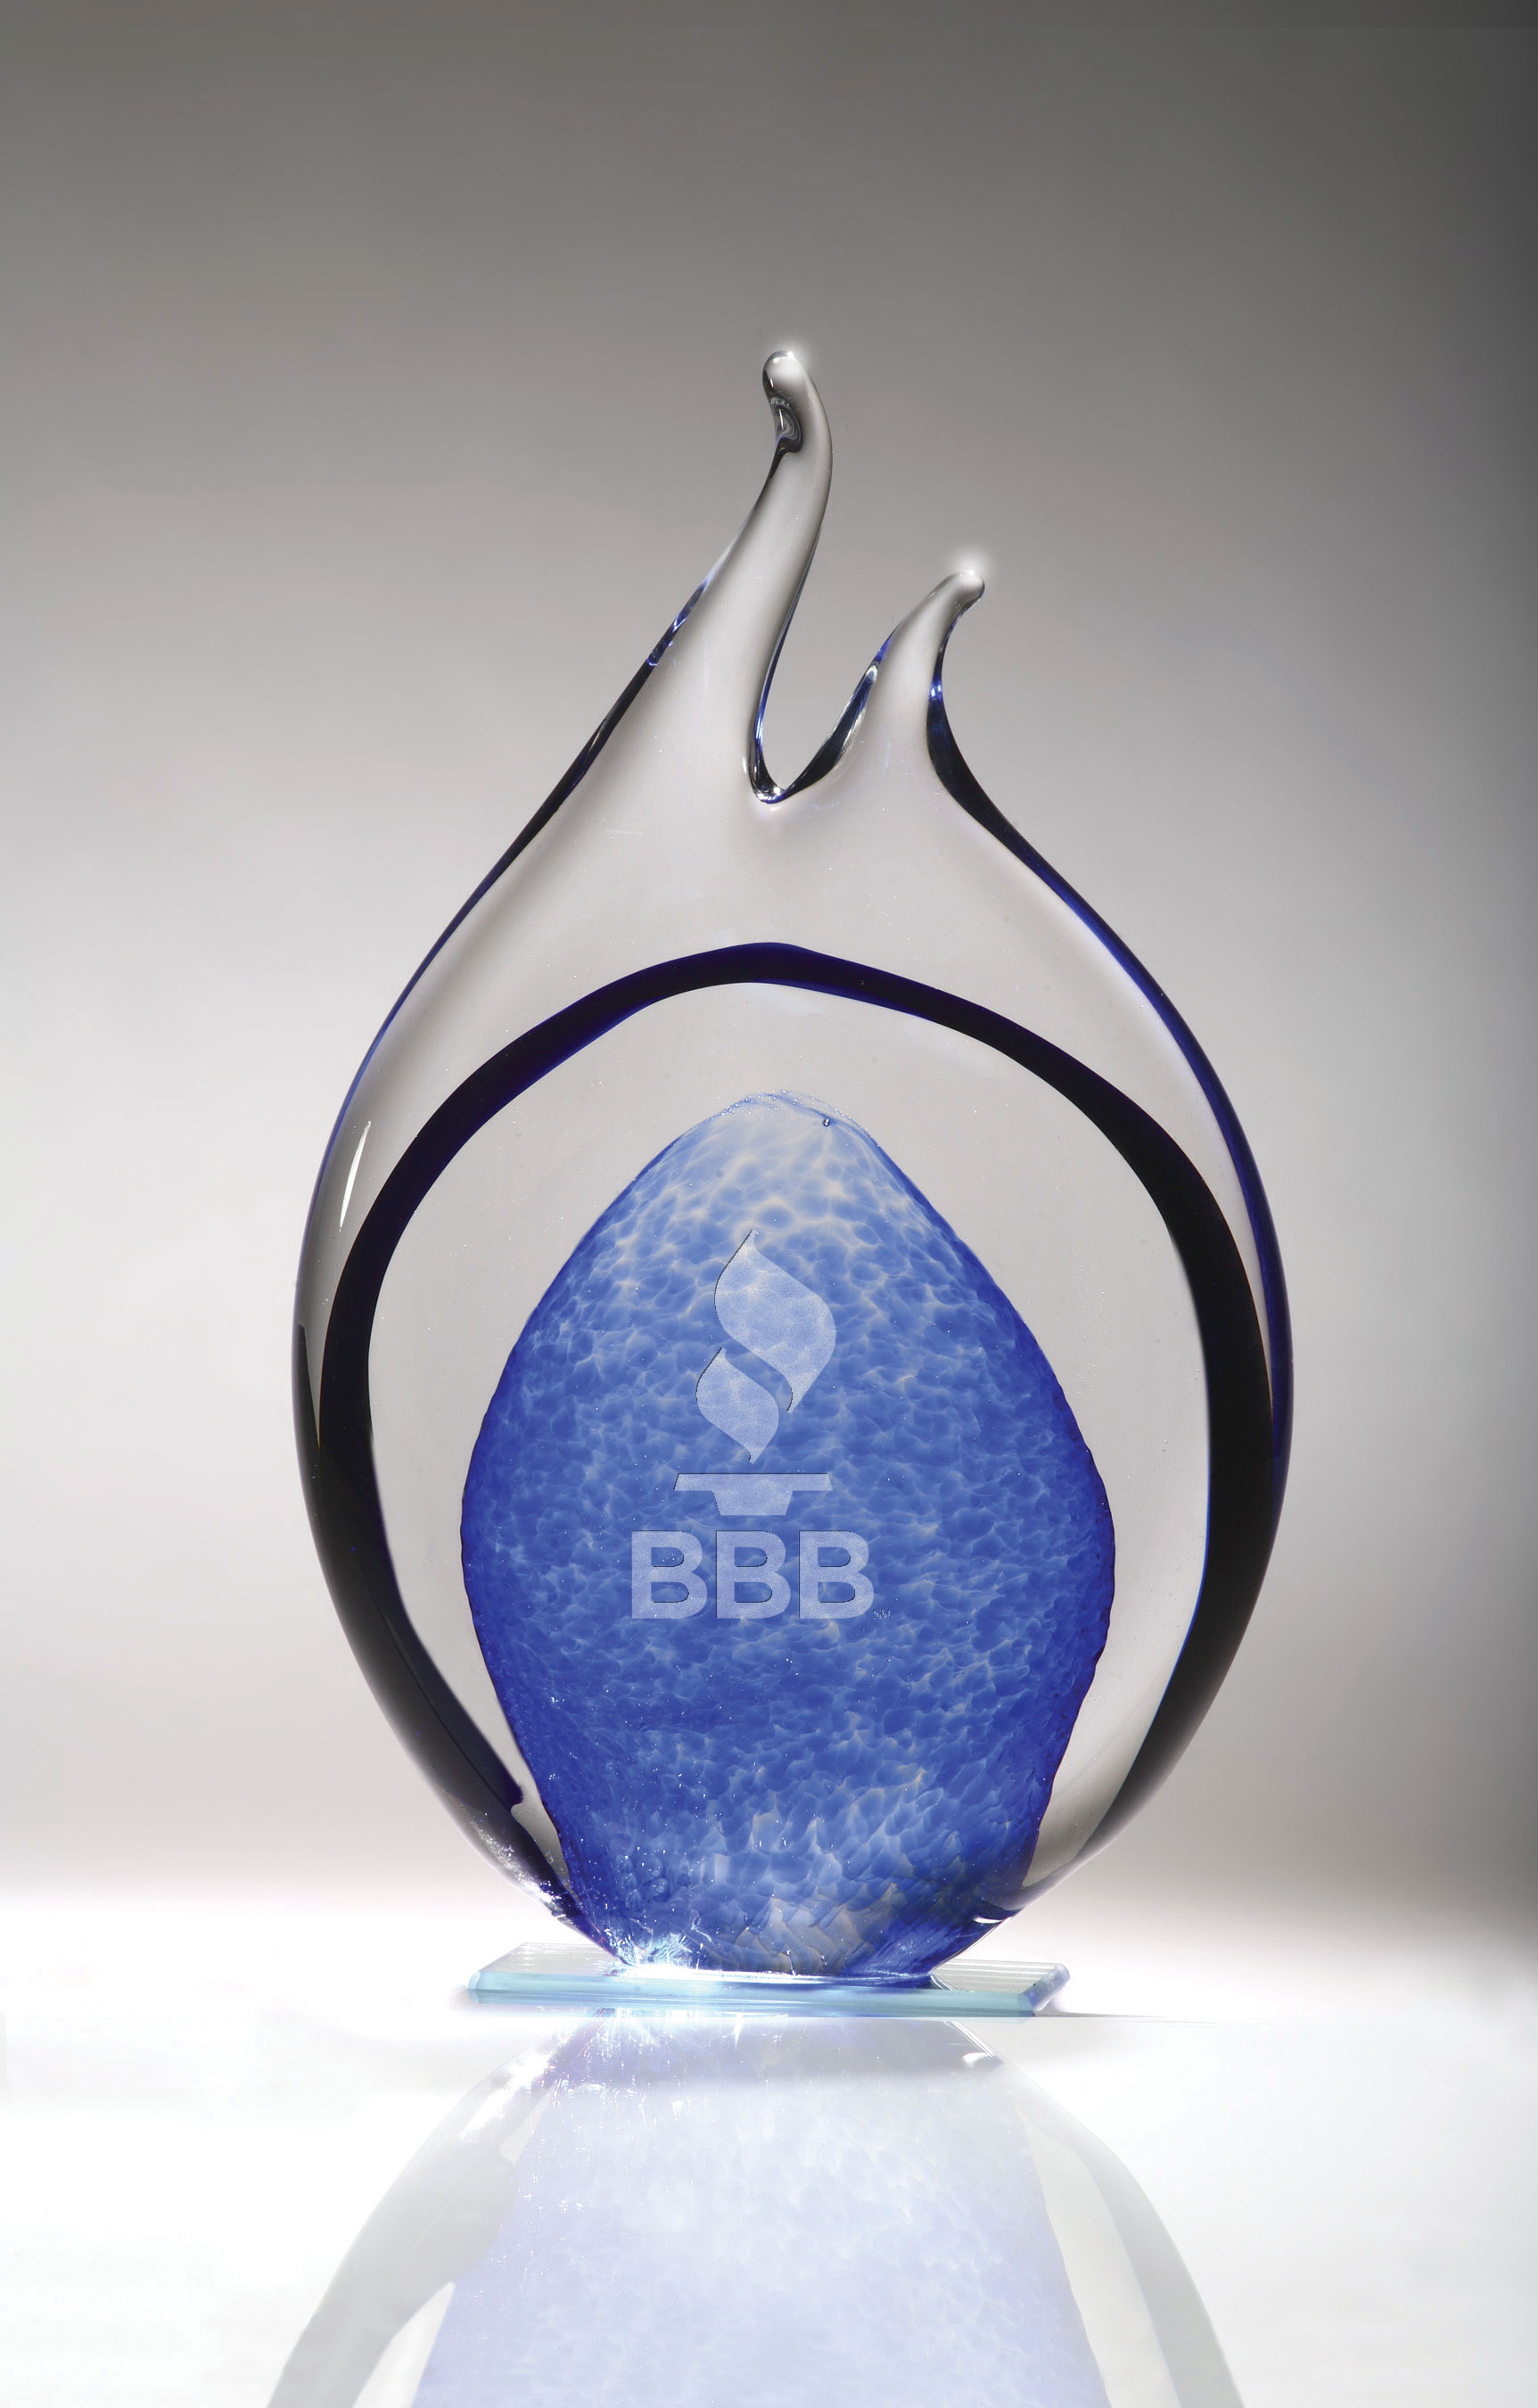 BBB Torch Award for Market Place Ethics